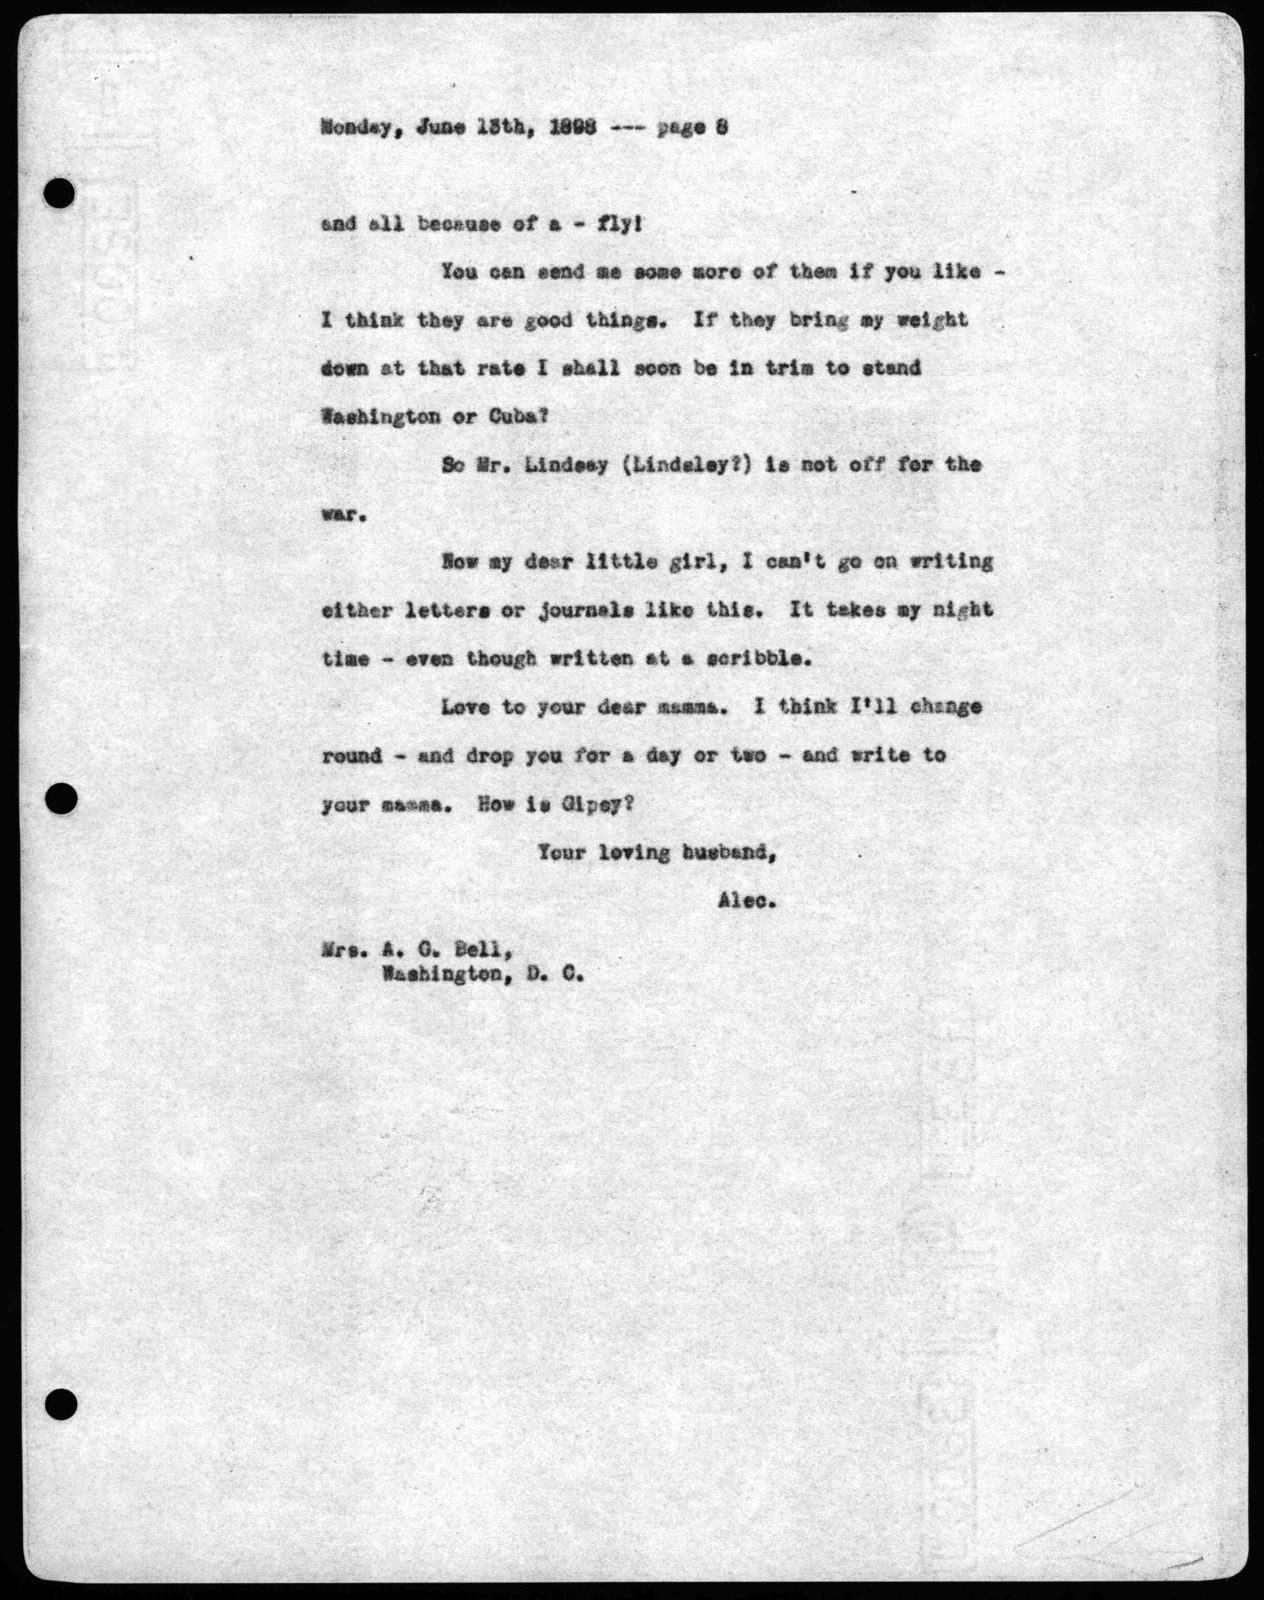 Letter from Alexander Graham Bell to Mabel Hubbard Bell, June 13, 1898